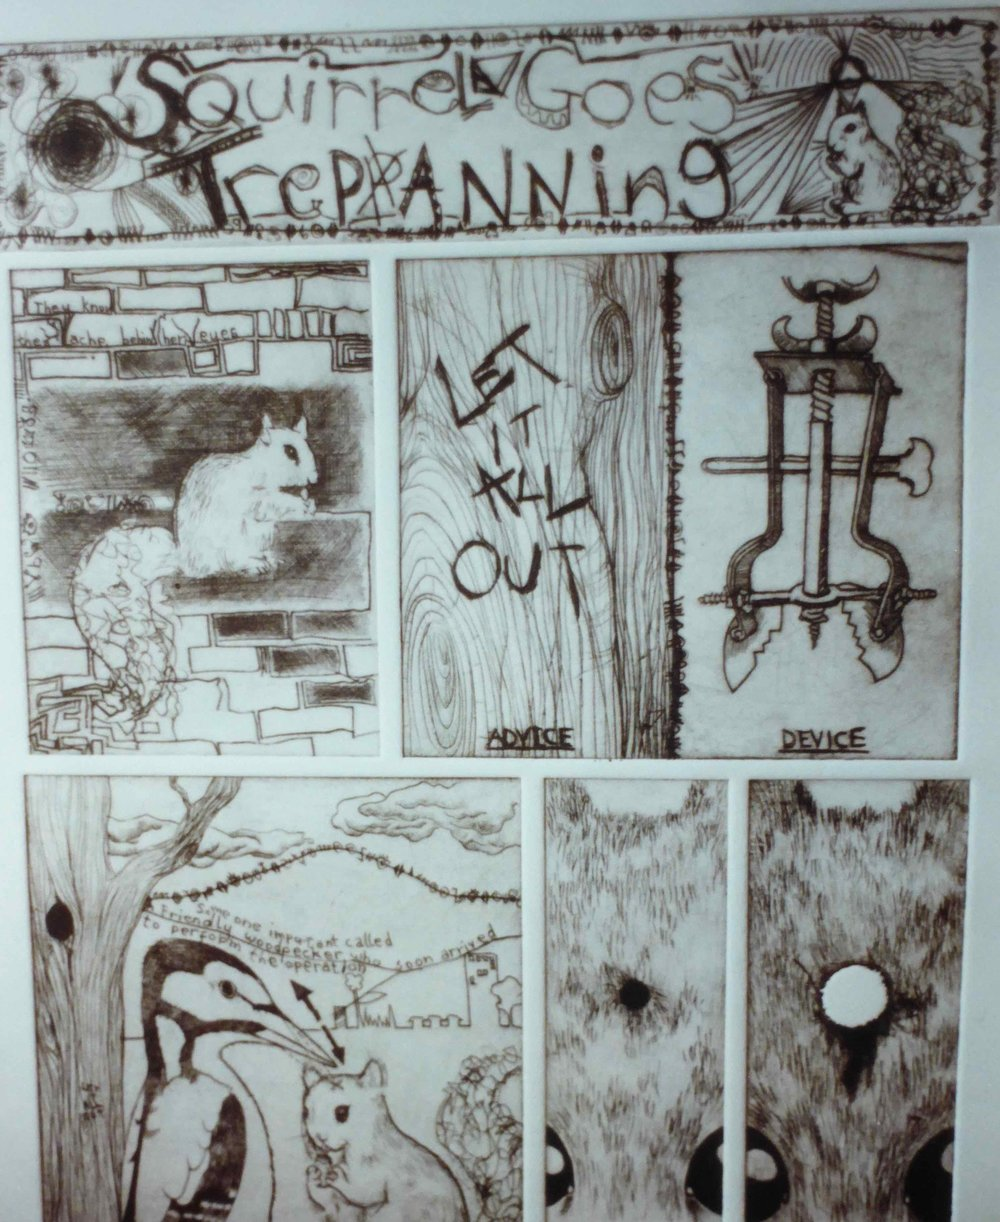 Detail from Squirrel Goes Trepanning (intaglio), 2004.